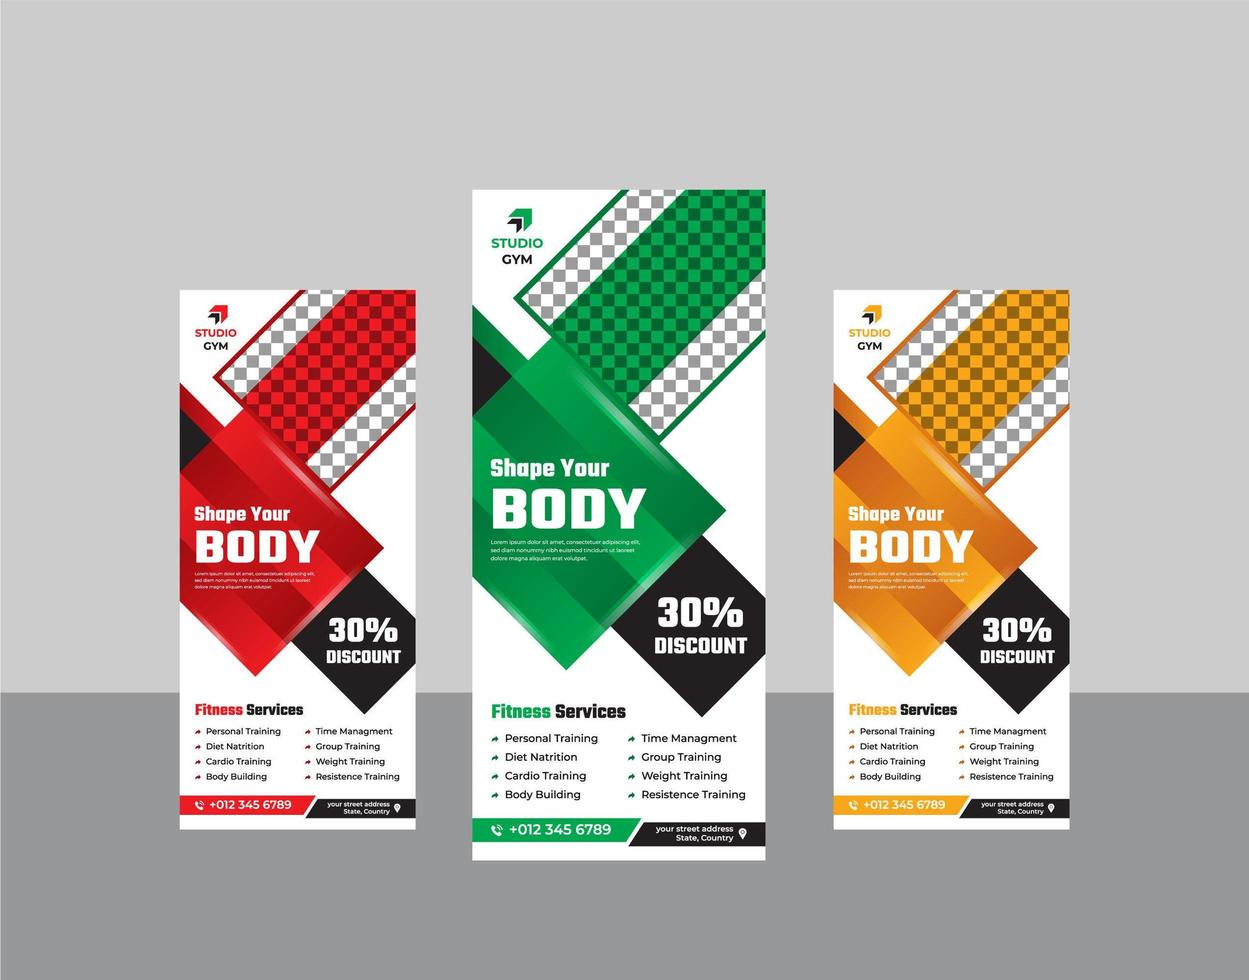 palestra fitness roll up stand banner modello moderno vettore